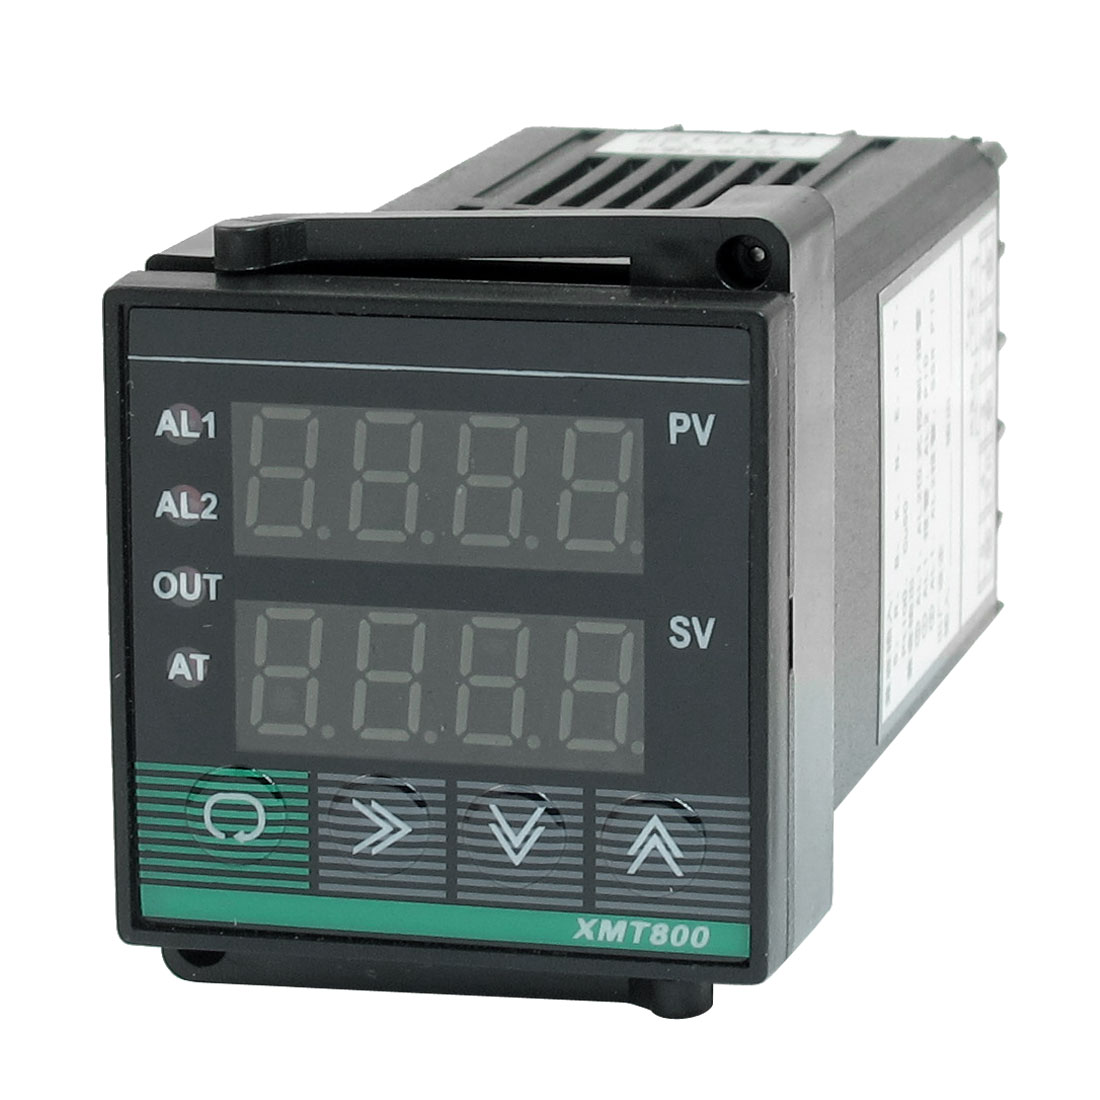 S R B K Type Thermocouple PV SV Display Digital PID Temperature Controller